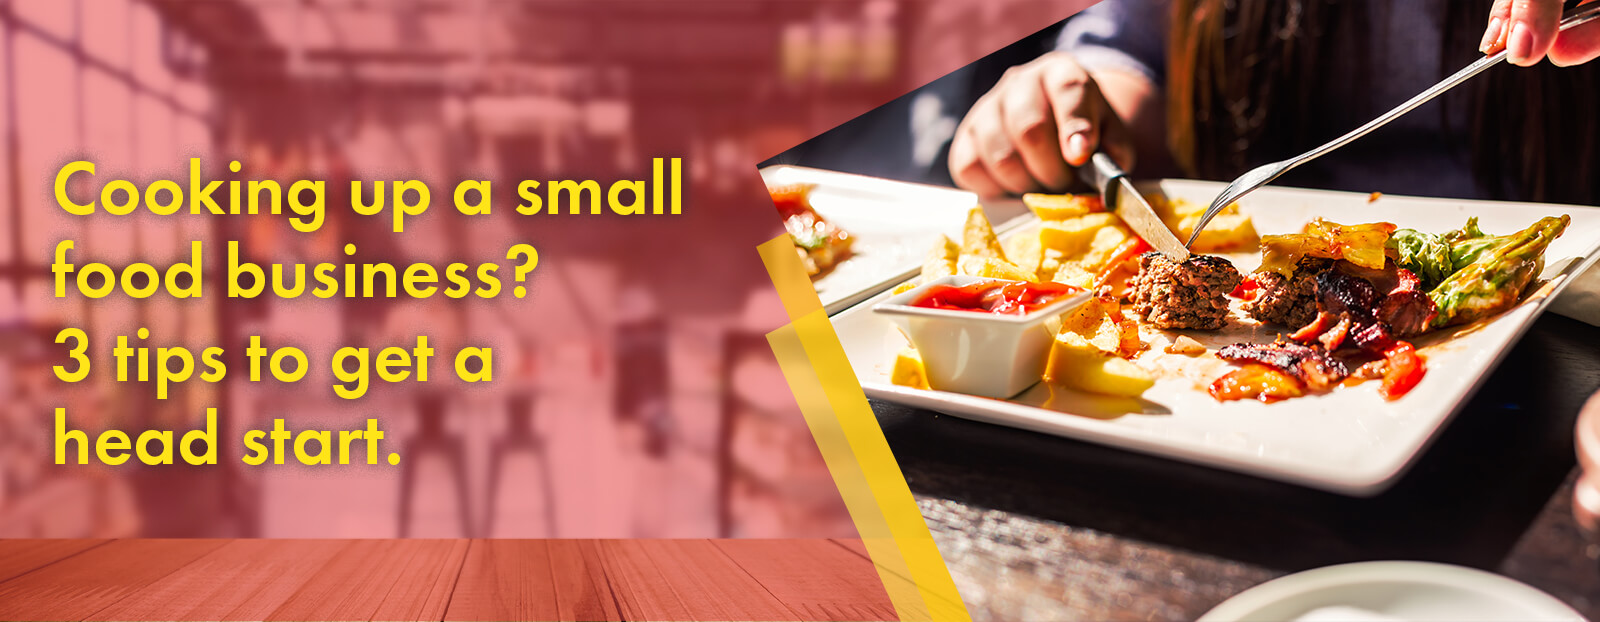 Cooking up a small food business? 3 tips to get a head start.